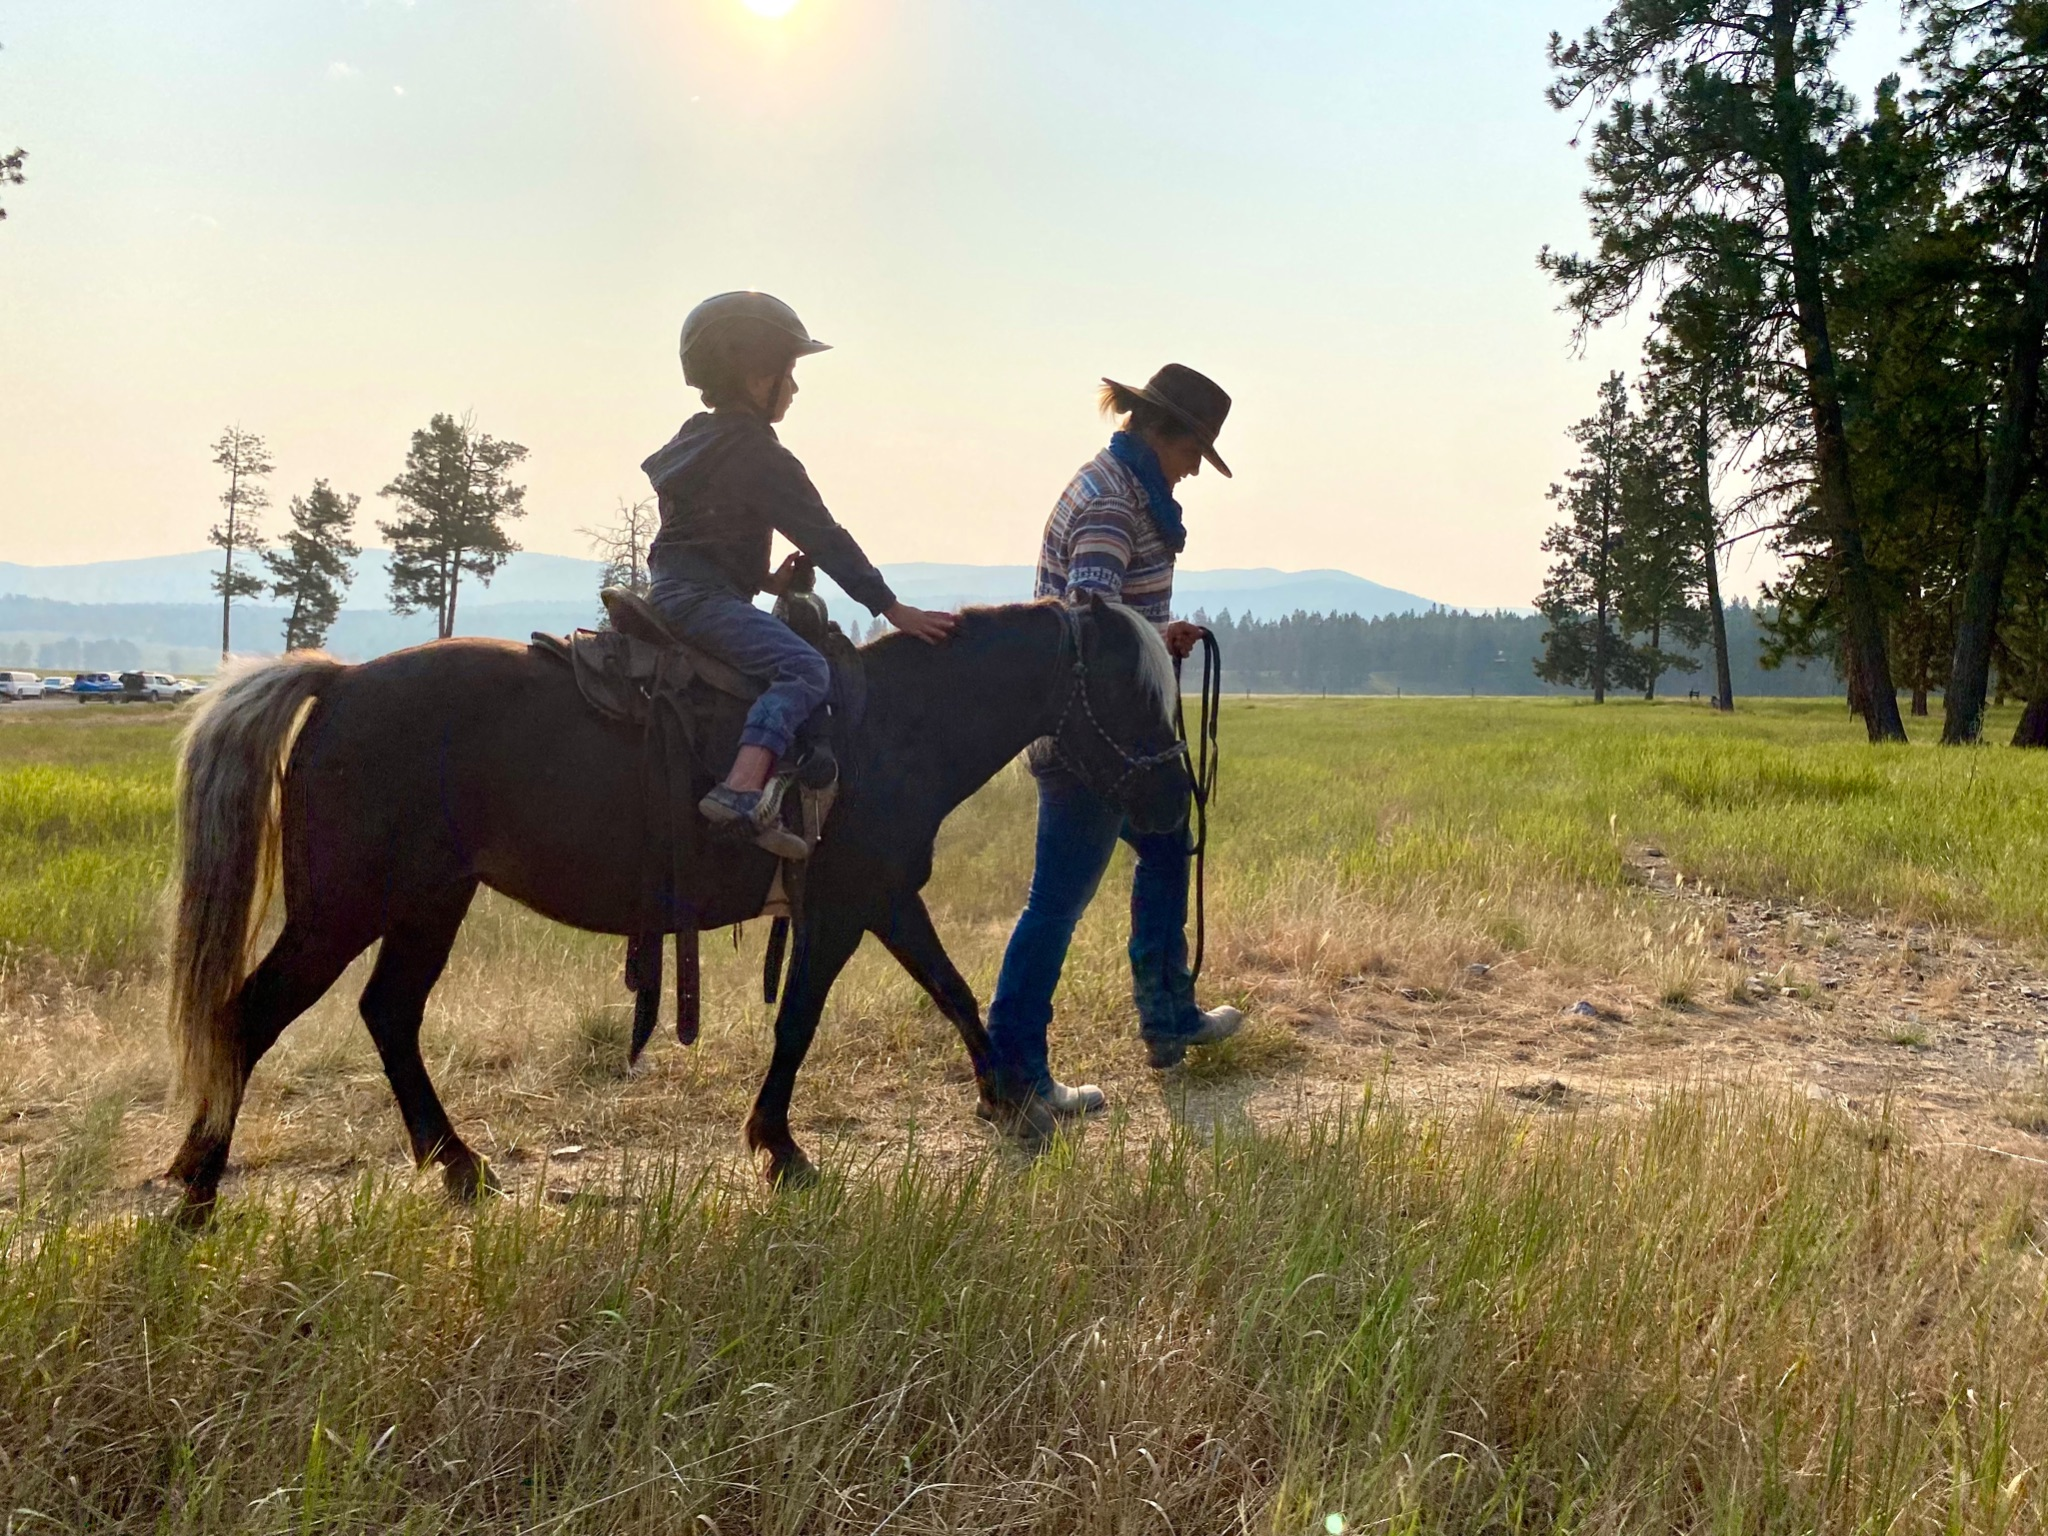 Paws Up Dude Ranch in Montana